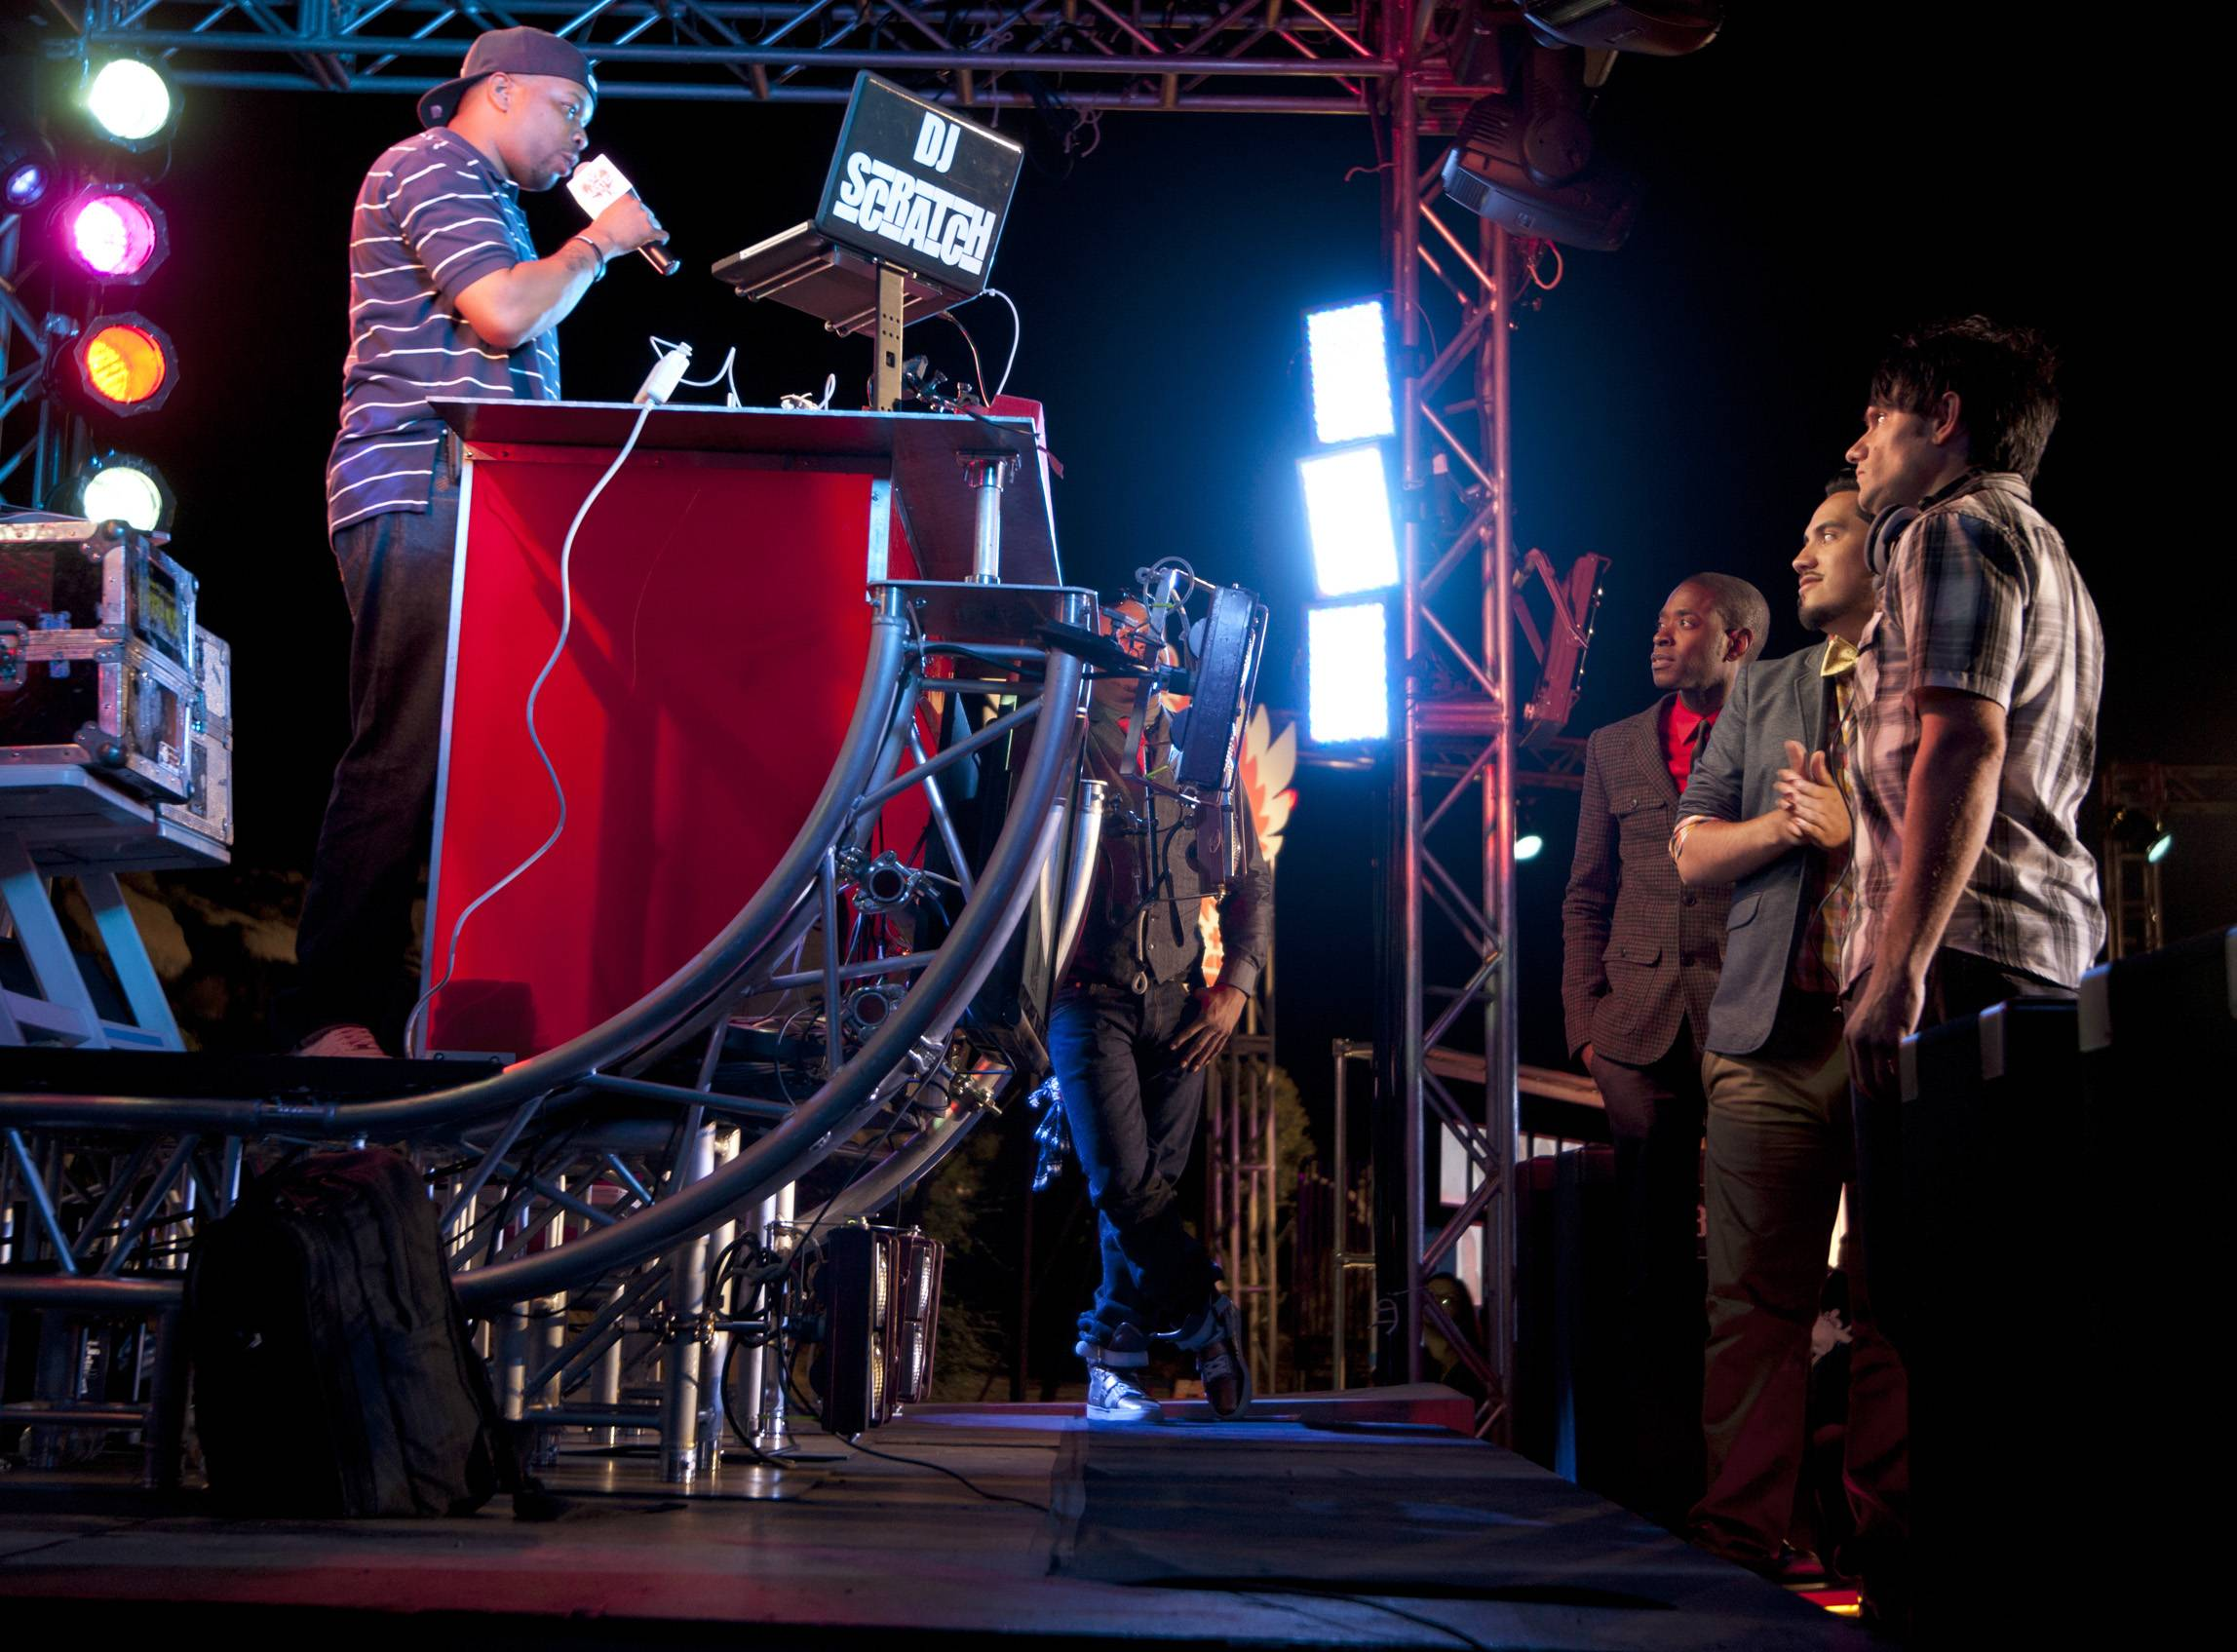 Before Seeing the Judges... - The DJs get some sound advice from DJ Scratch, the season 1 winner of Master of the Mix. (Photo: Moses Mitchell/BET)